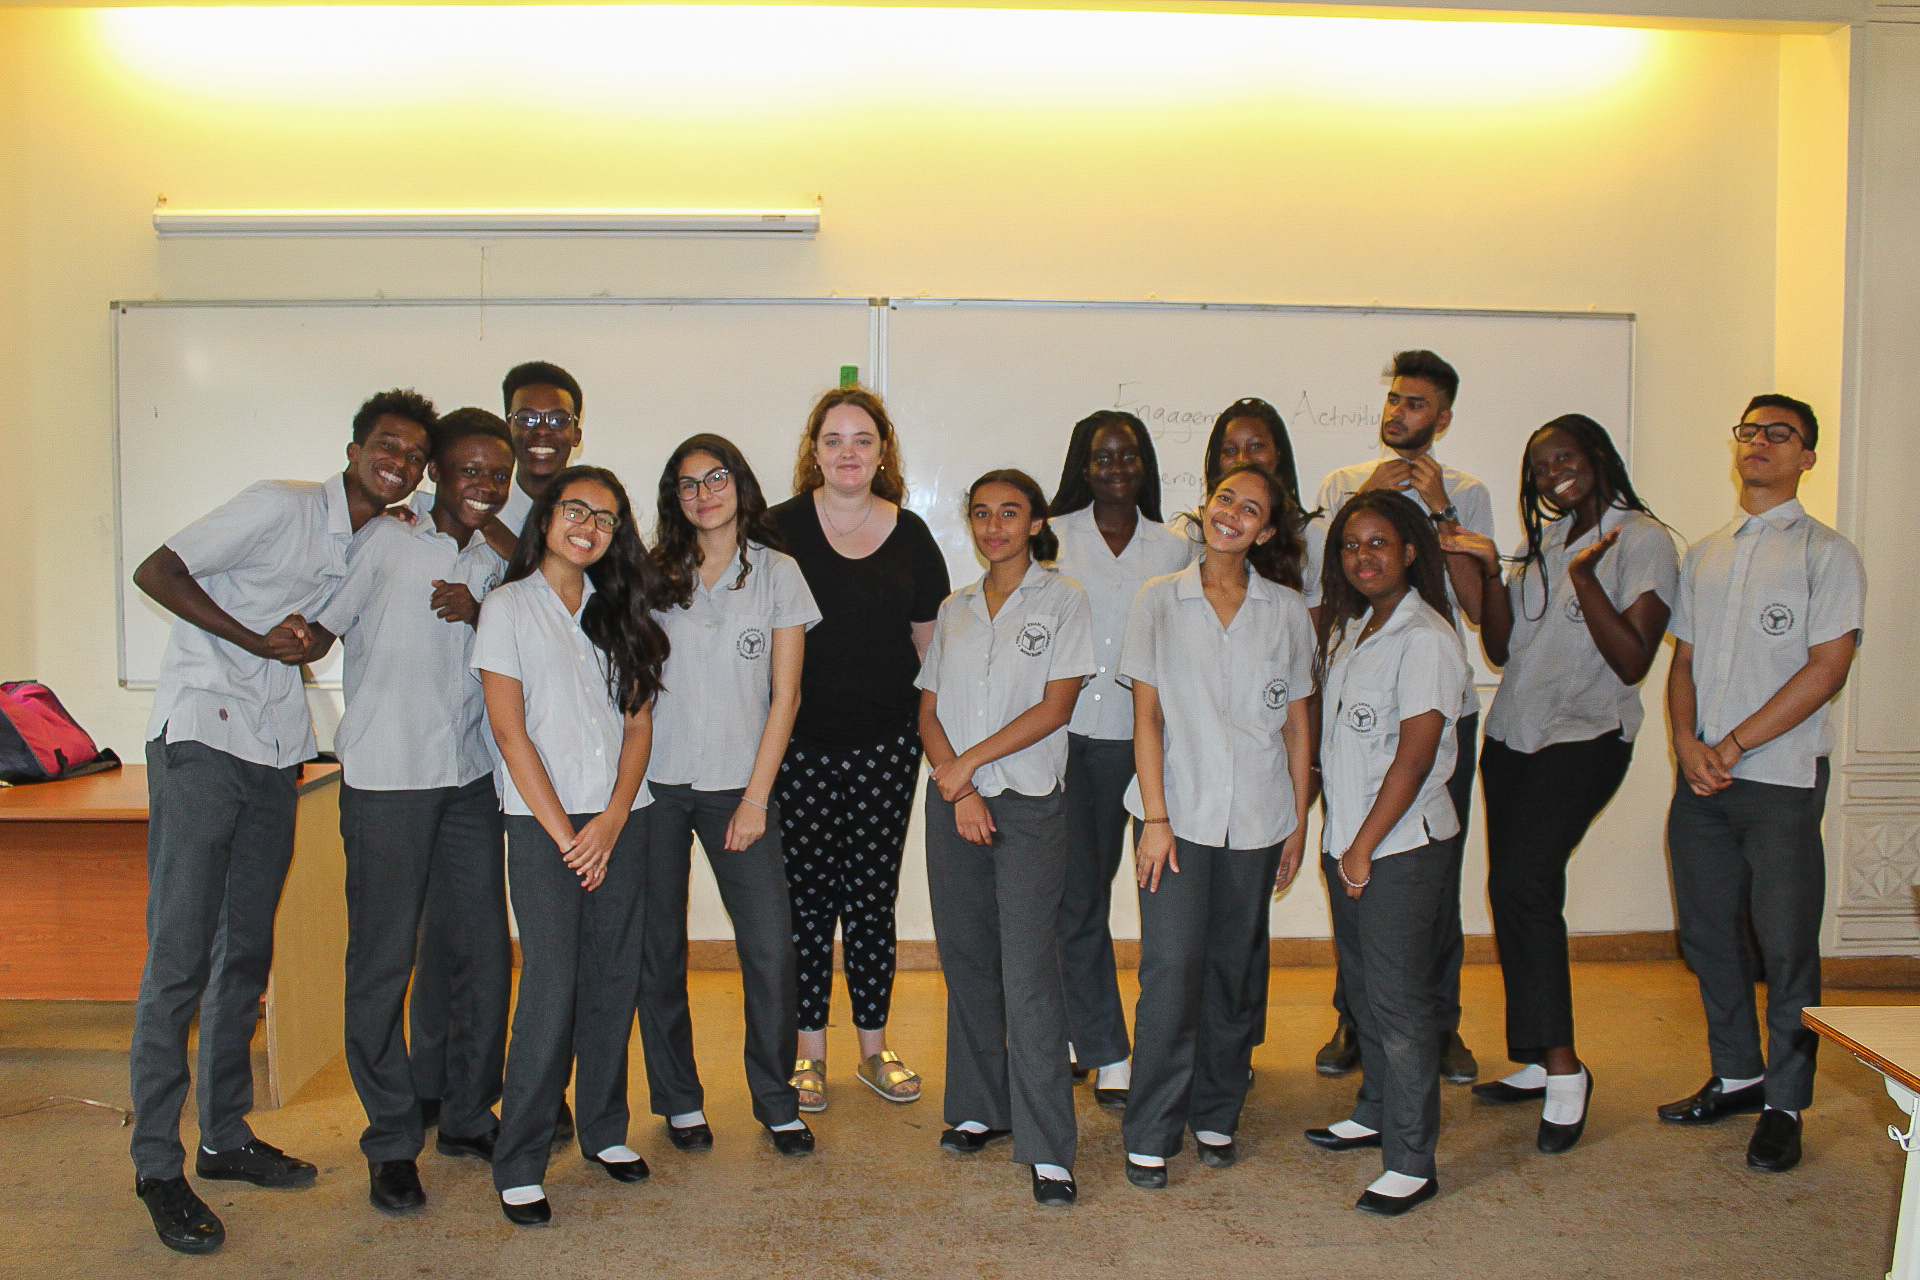 Harriet with her students